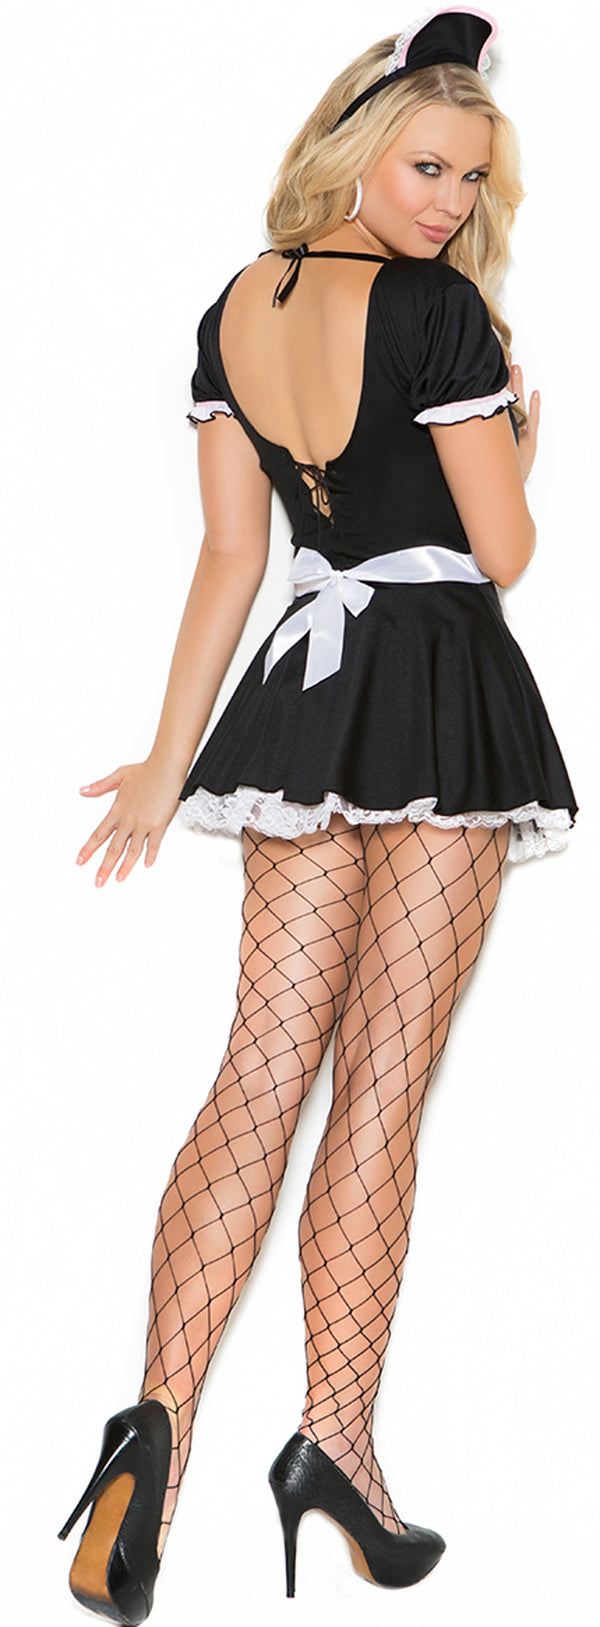 EM-9132 Maid To Please costume back